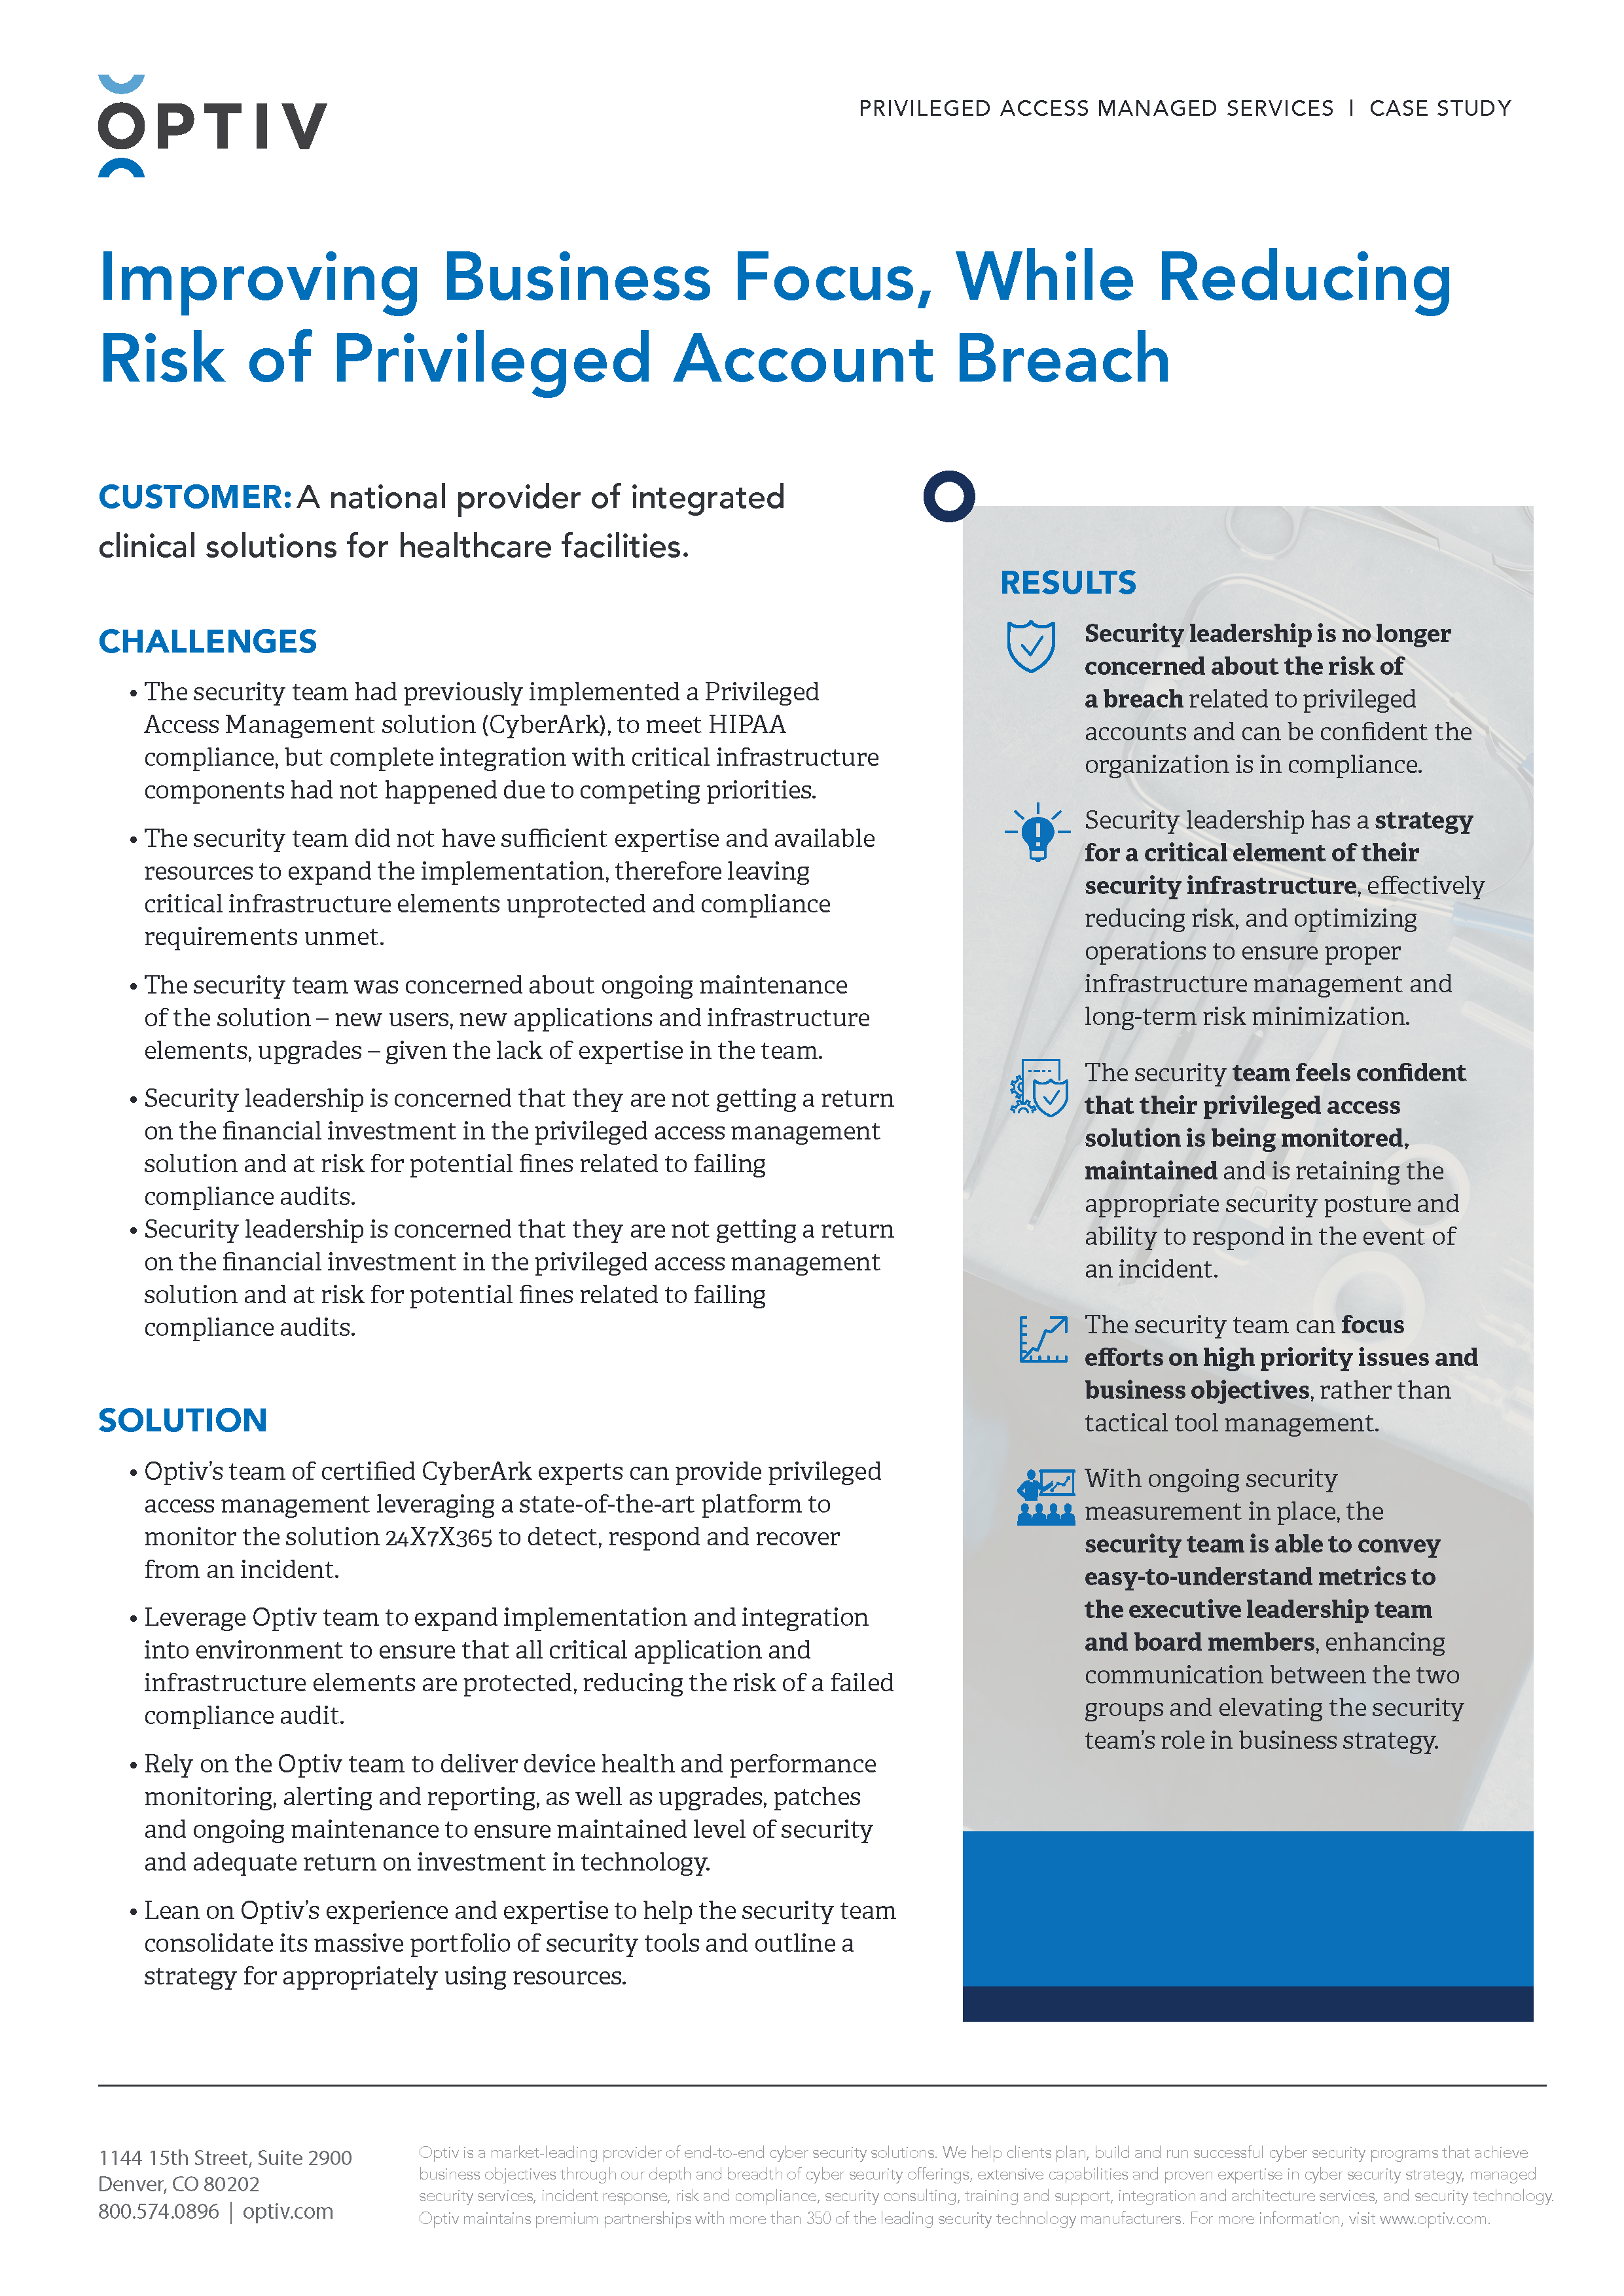 National Provider of Integrated Clinical Solutions Improves Business Focus While Reducing Risk of Privileged Account Breach